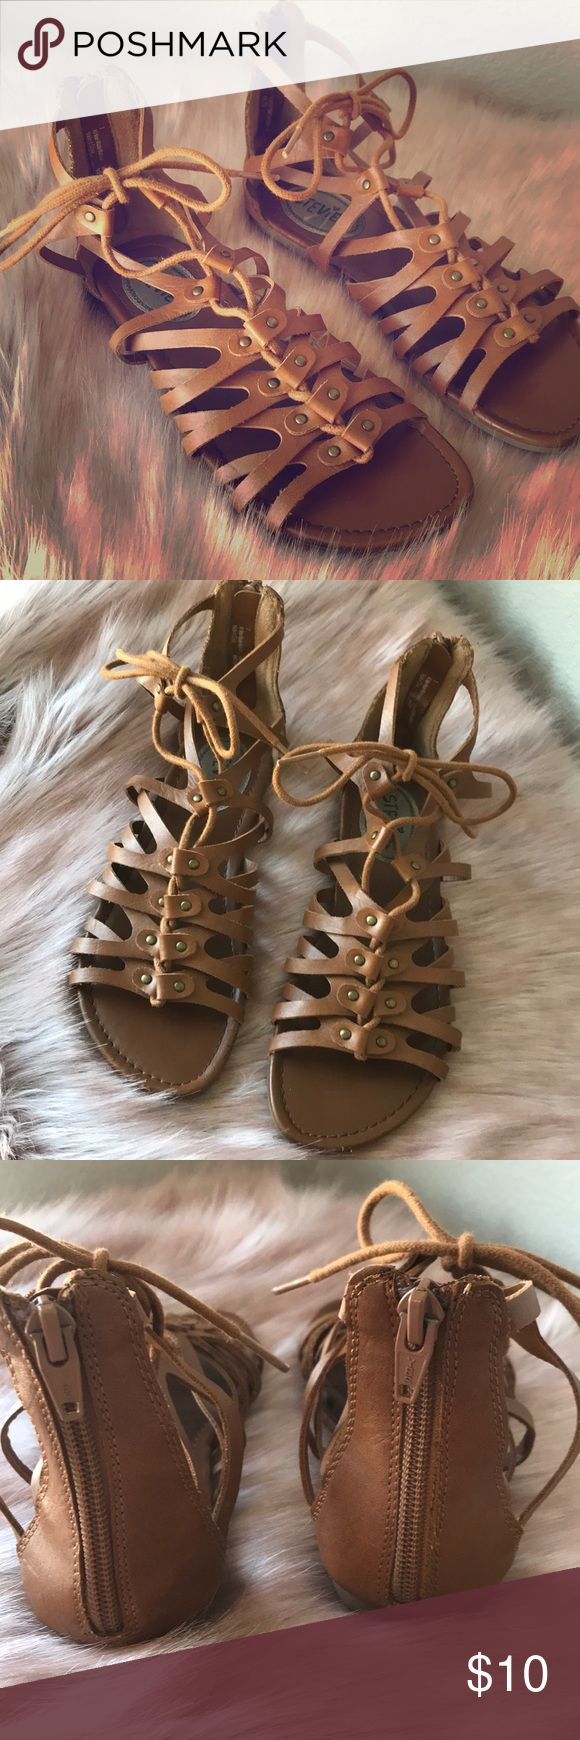 Girls brown gladiator sandals 3 by Stevies Girls brown Gladiator sandals. Size 3 by Stevie's A little scuffing on toes Stevies Shoes Sandals & Flip Flops